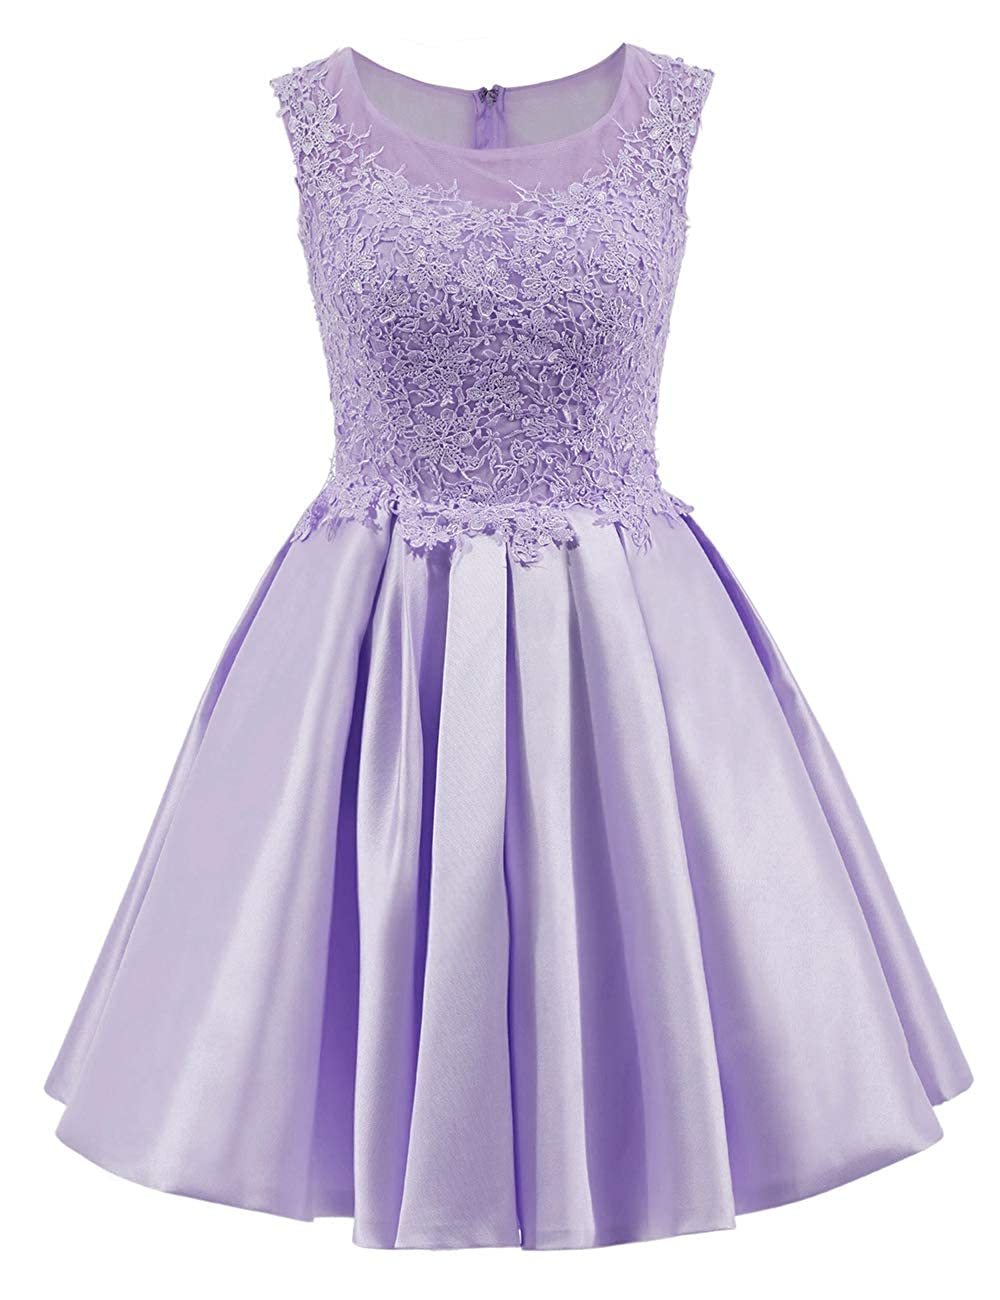 Lavender Uther Short Homecoming Dress Cap Sleeves Appliques Vintage Swing Dress Cocktail Dresses